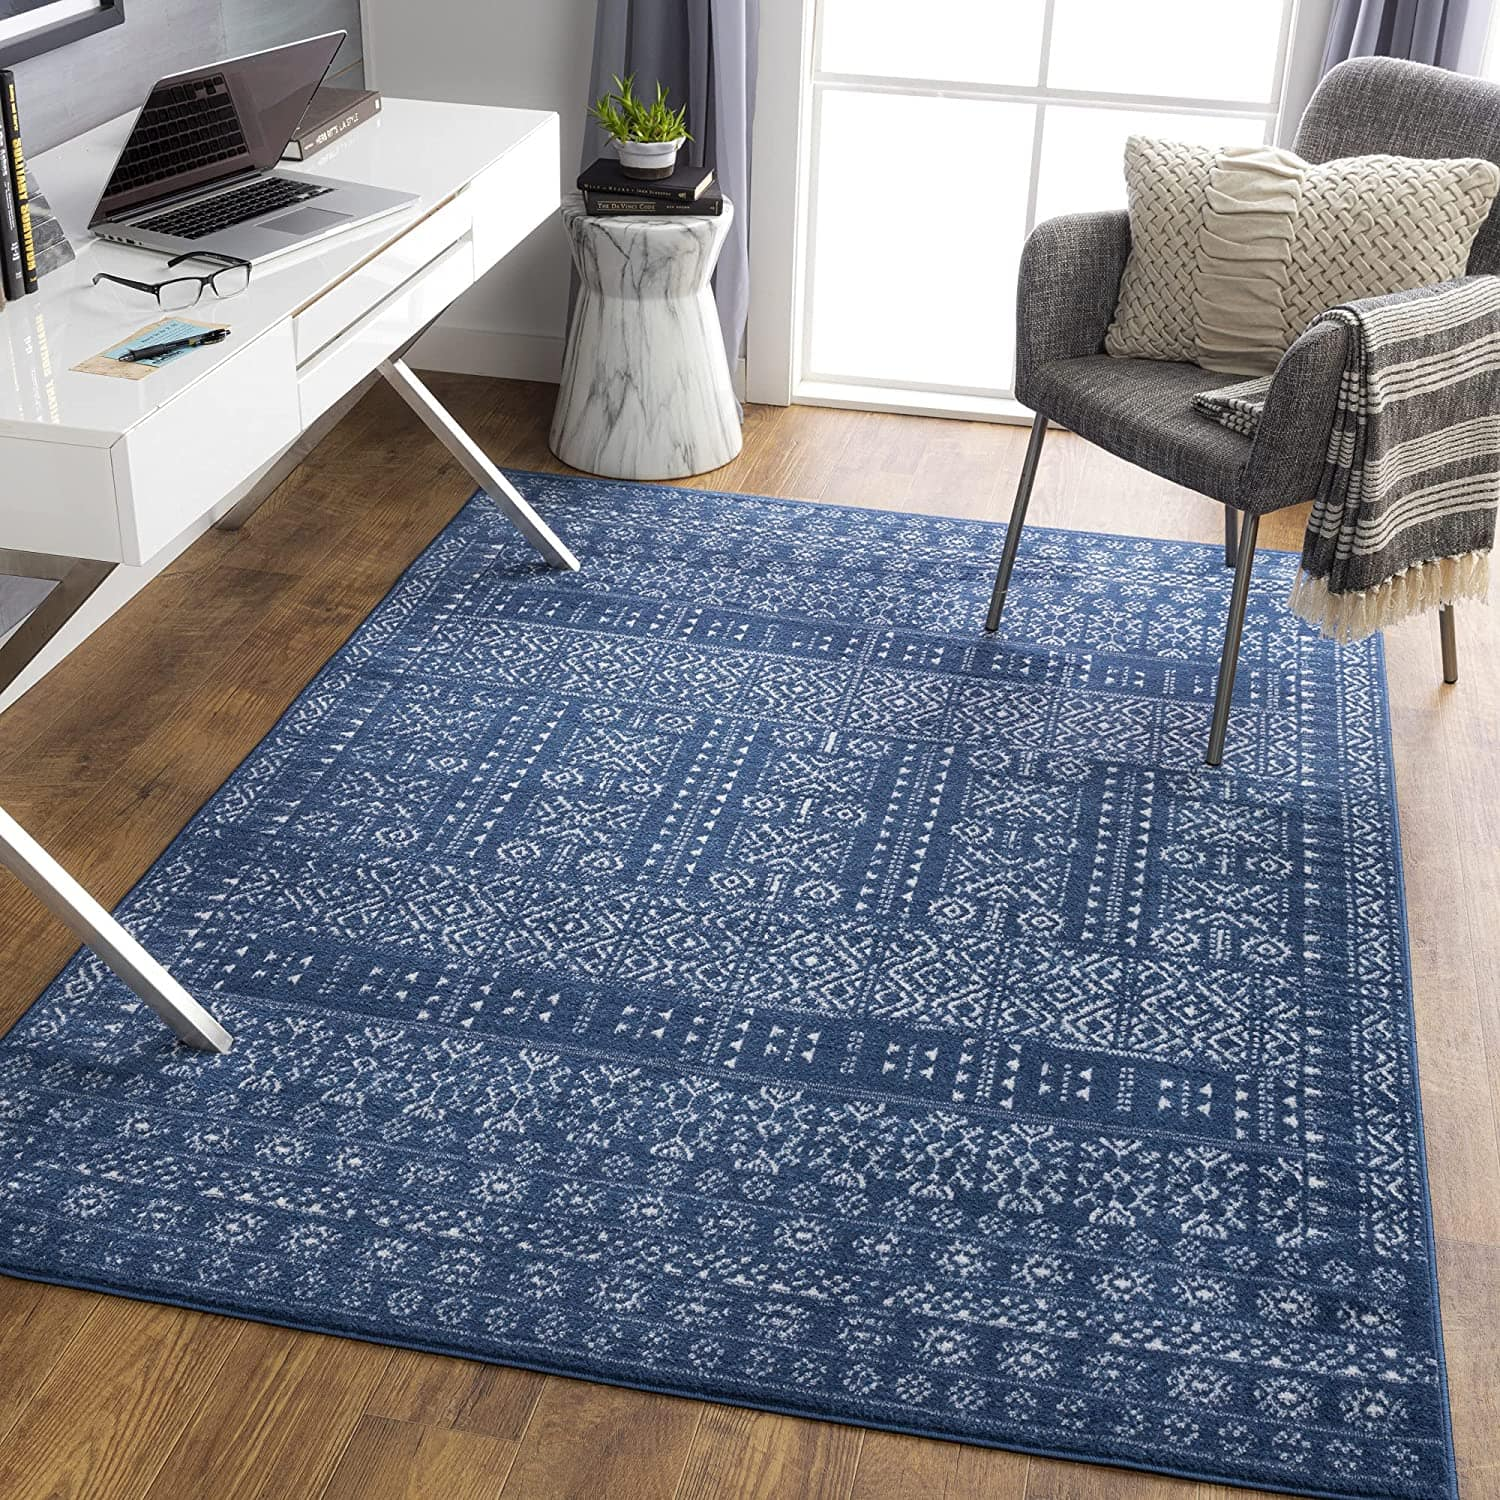 """5'3"""" x 7' Artistic Weavers Area Rugs (Various) $38.50 + Free Shipping"""